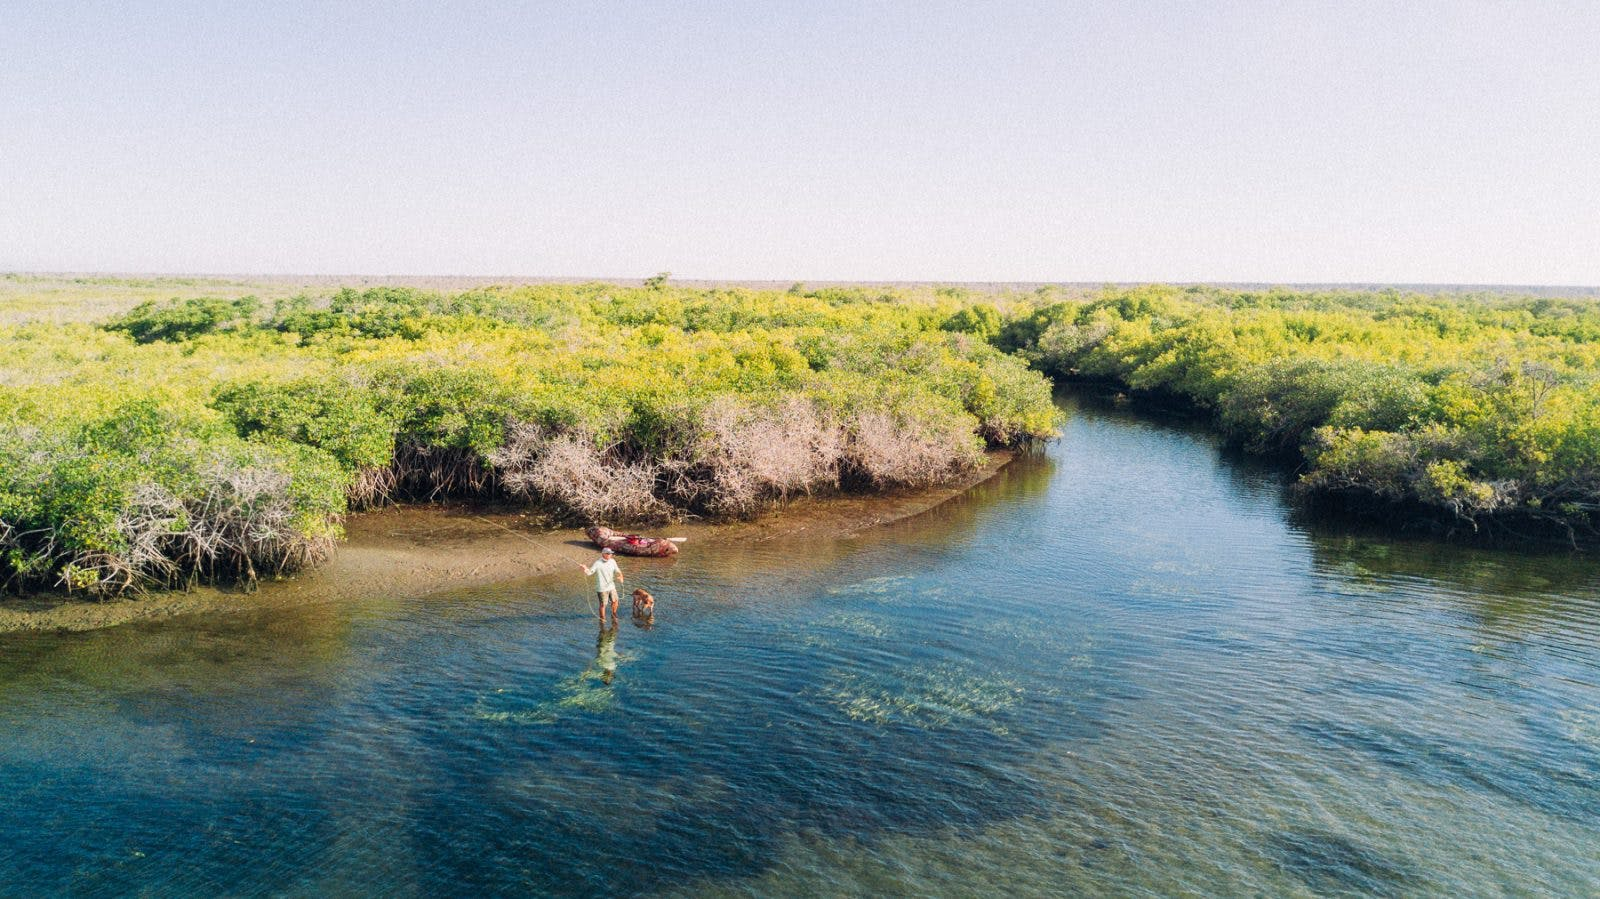 Paolo Marchesi Renews a Sense of Trust & Appreciation for Others While Fly Fishing in Remote Regions of Baja